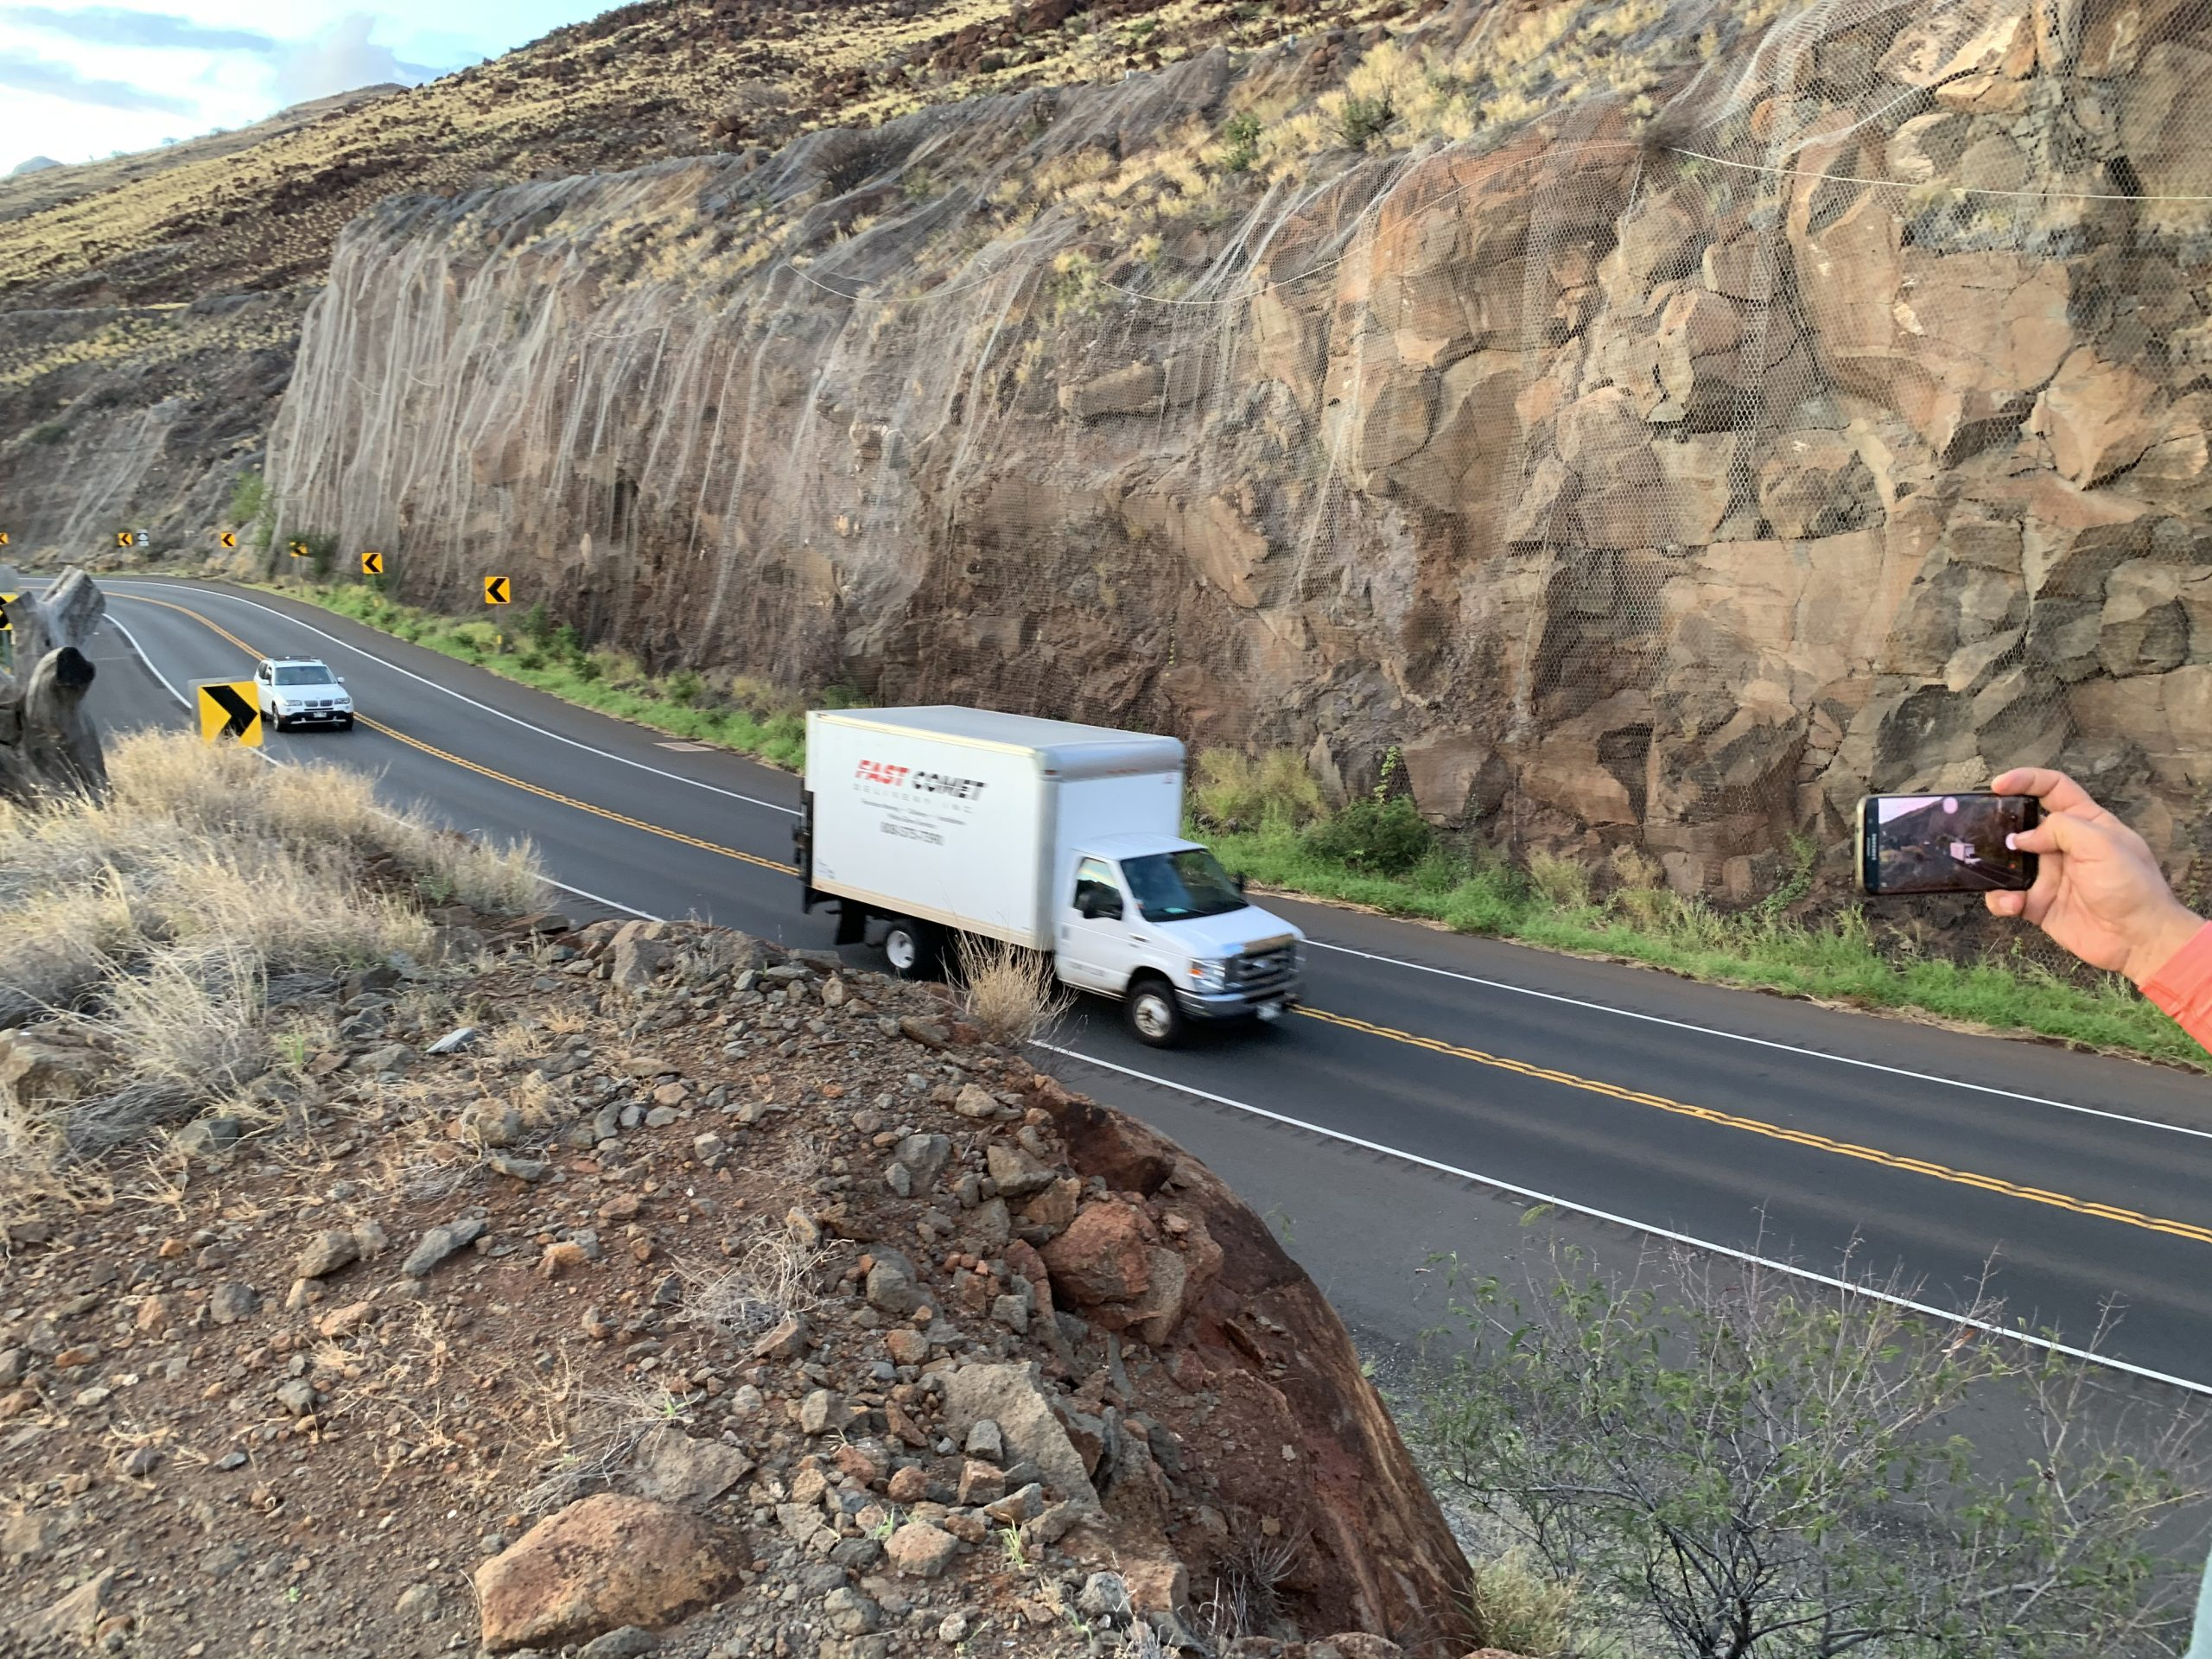 Fast Comet Delivery Truck 21 - Maui Hawaii